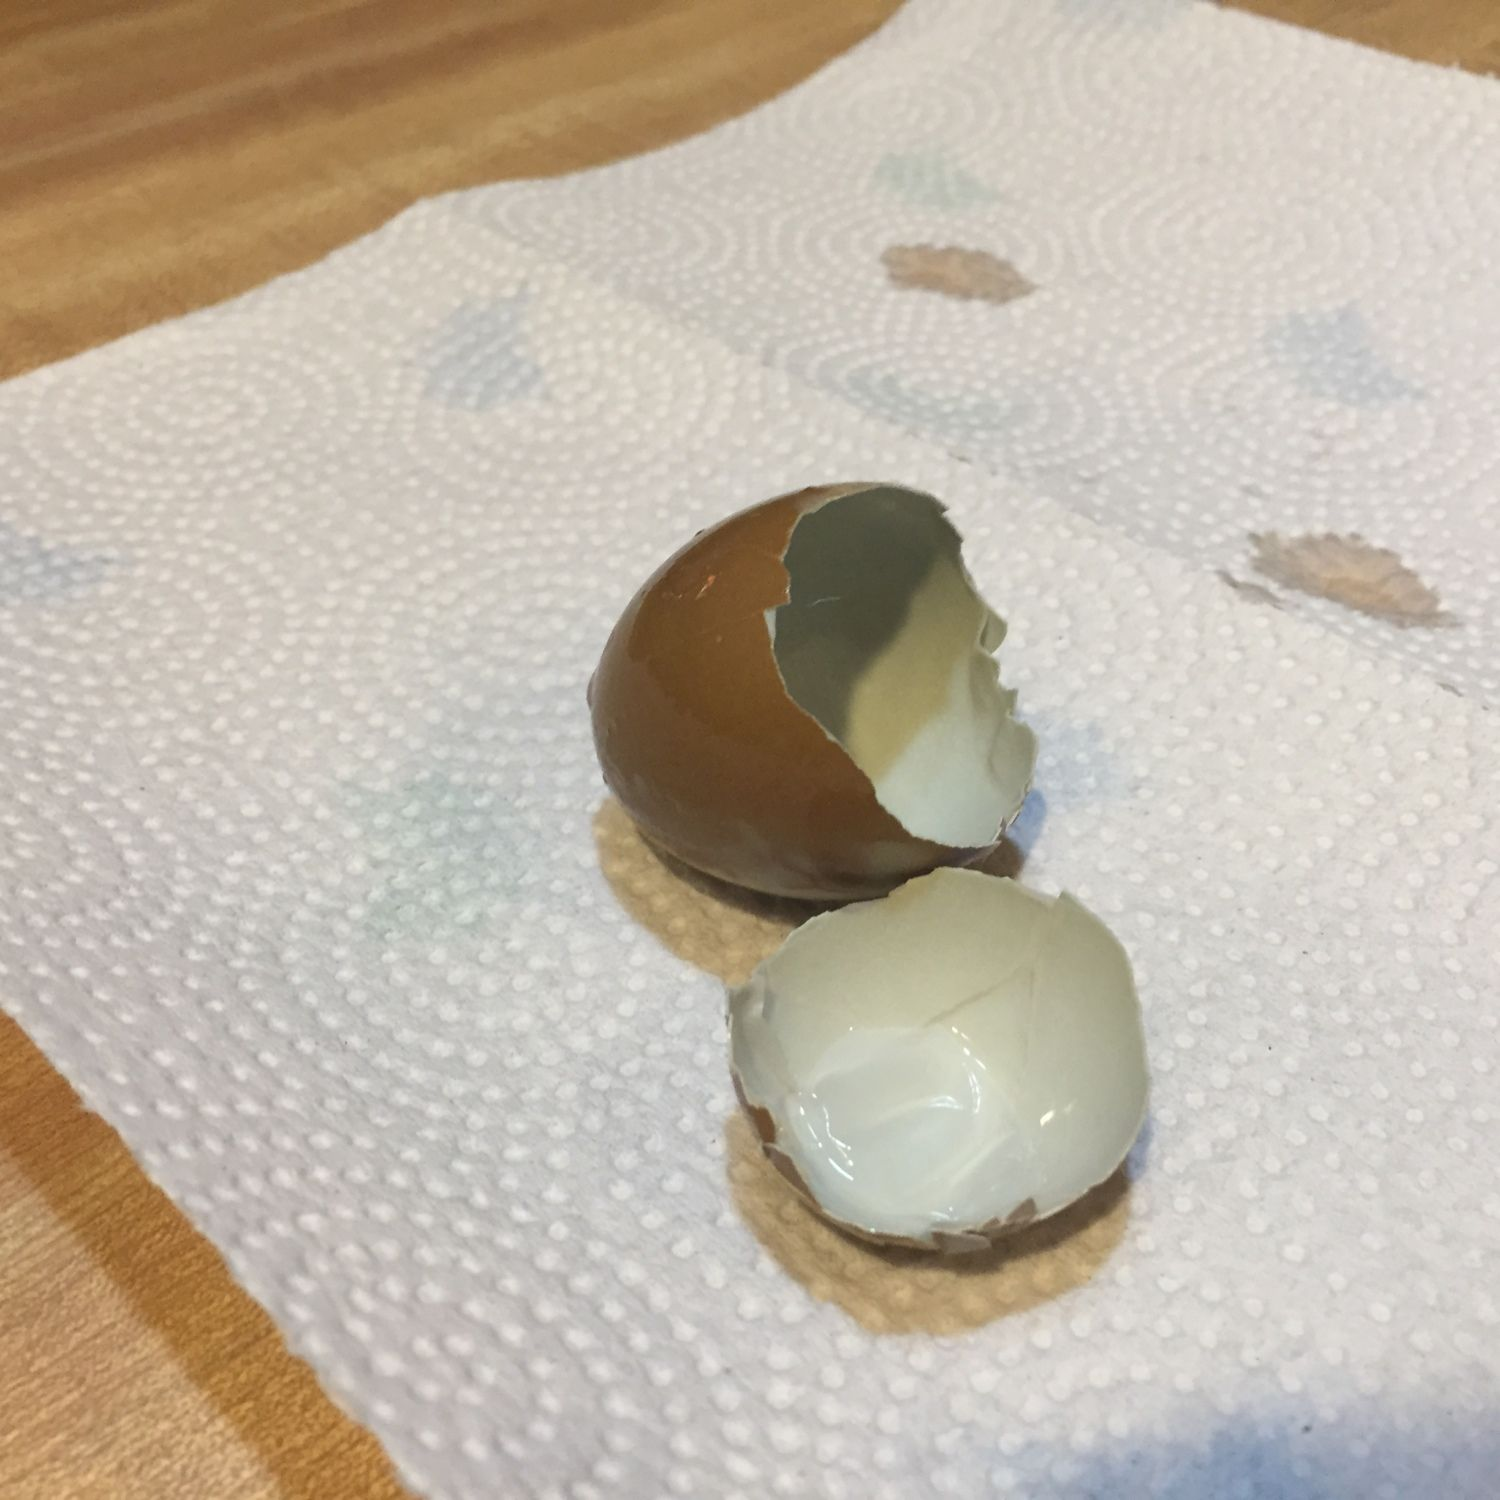 Anatomy of an olive egg. The outside appears brown in this photo because the egg is wet, when dry it's olive green. Note the inside is actually a blue shell from mom and the cuticle (bloom) is brown from dad. I'll post more olive egg pictures as I get them.